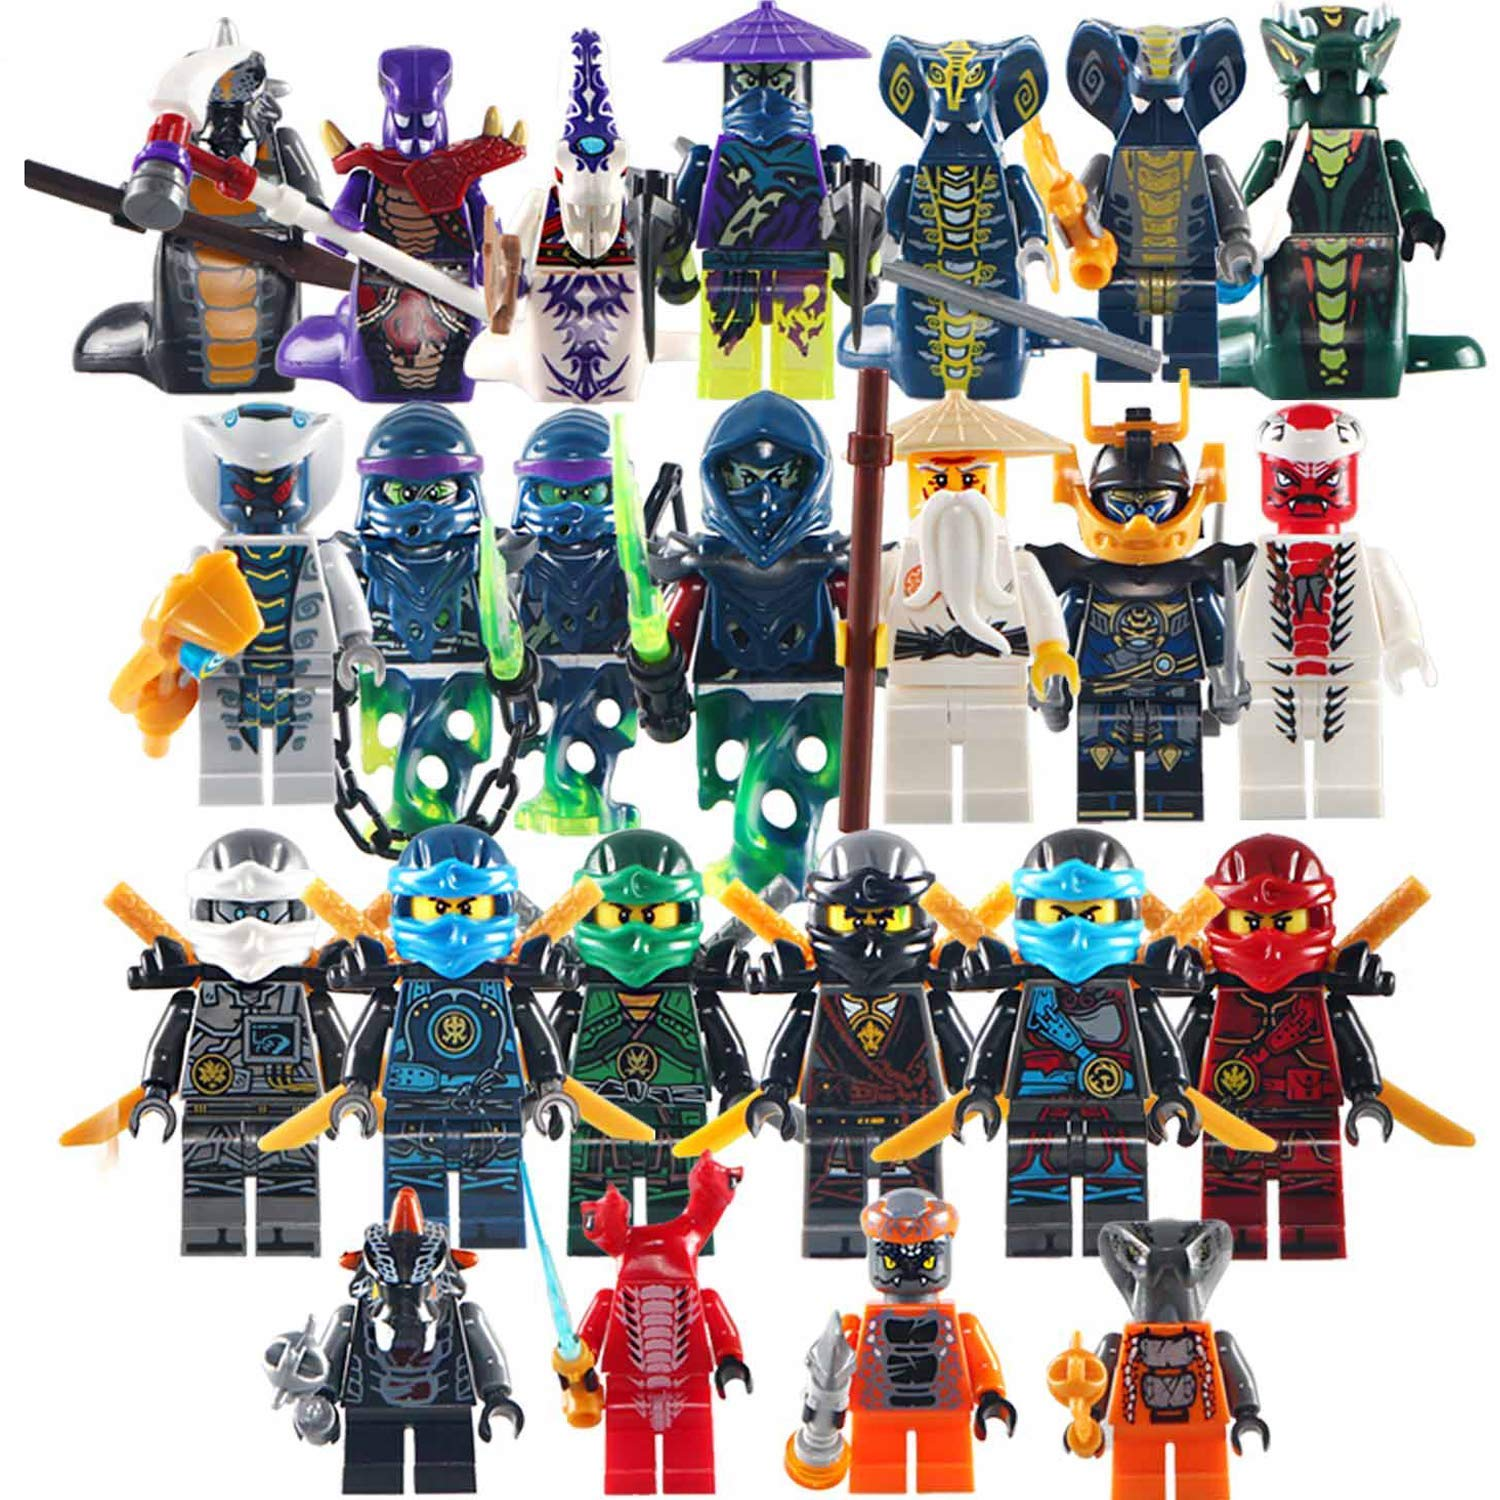 24Pcs Ninjago Mini figure Kai Jay Sensei Wu Master Building Blocks Toy gifts